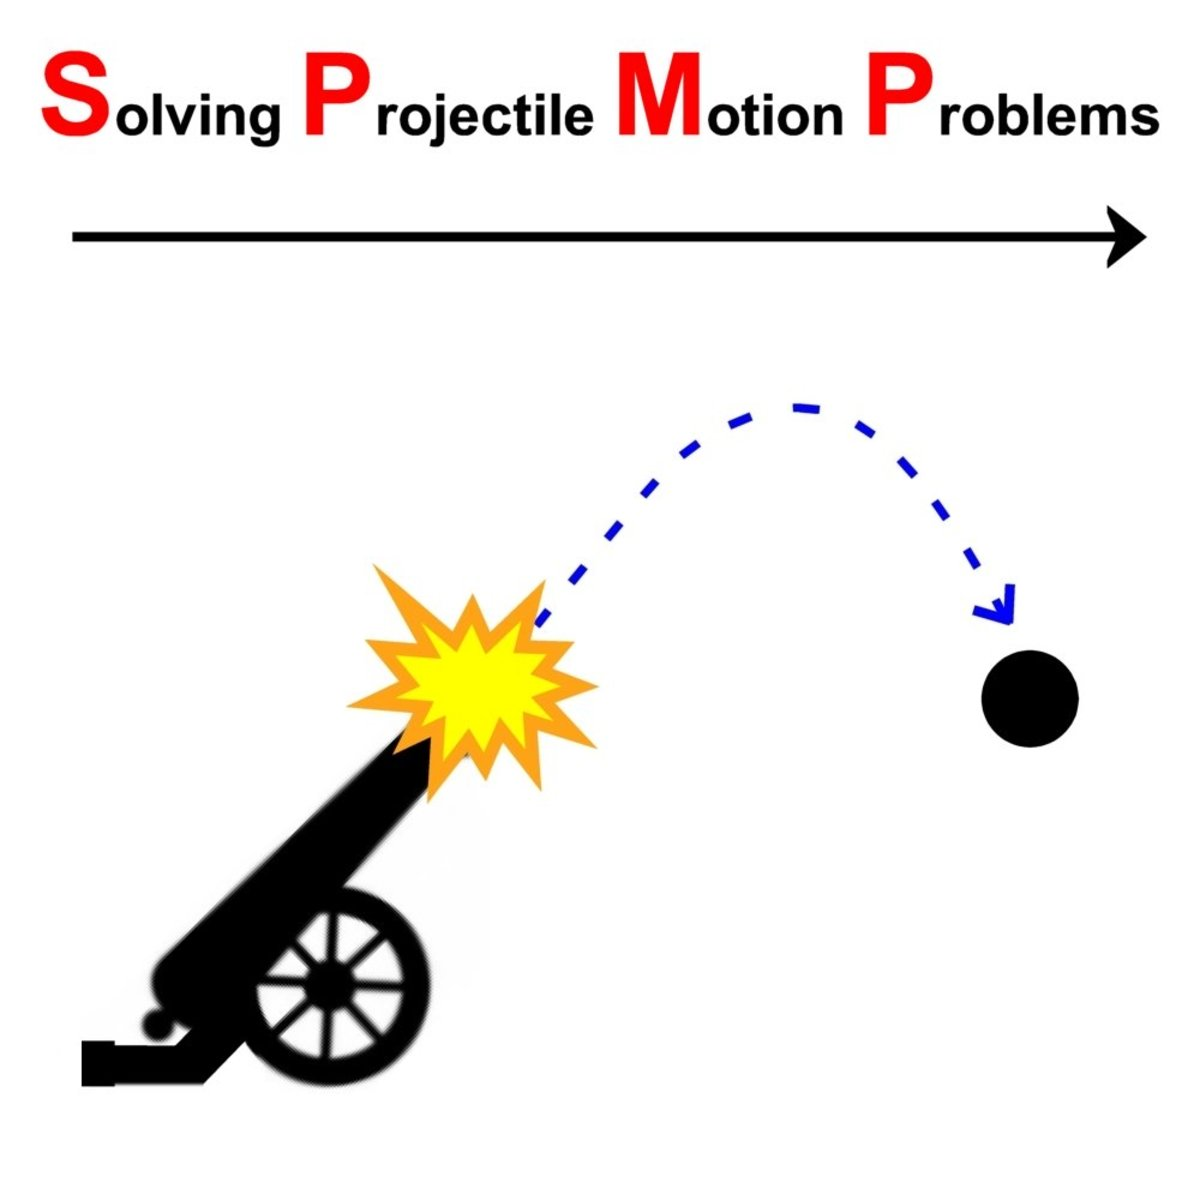 Solving Projectile Motion Problems — Applying Newton's Equations of Motion to Ballistics